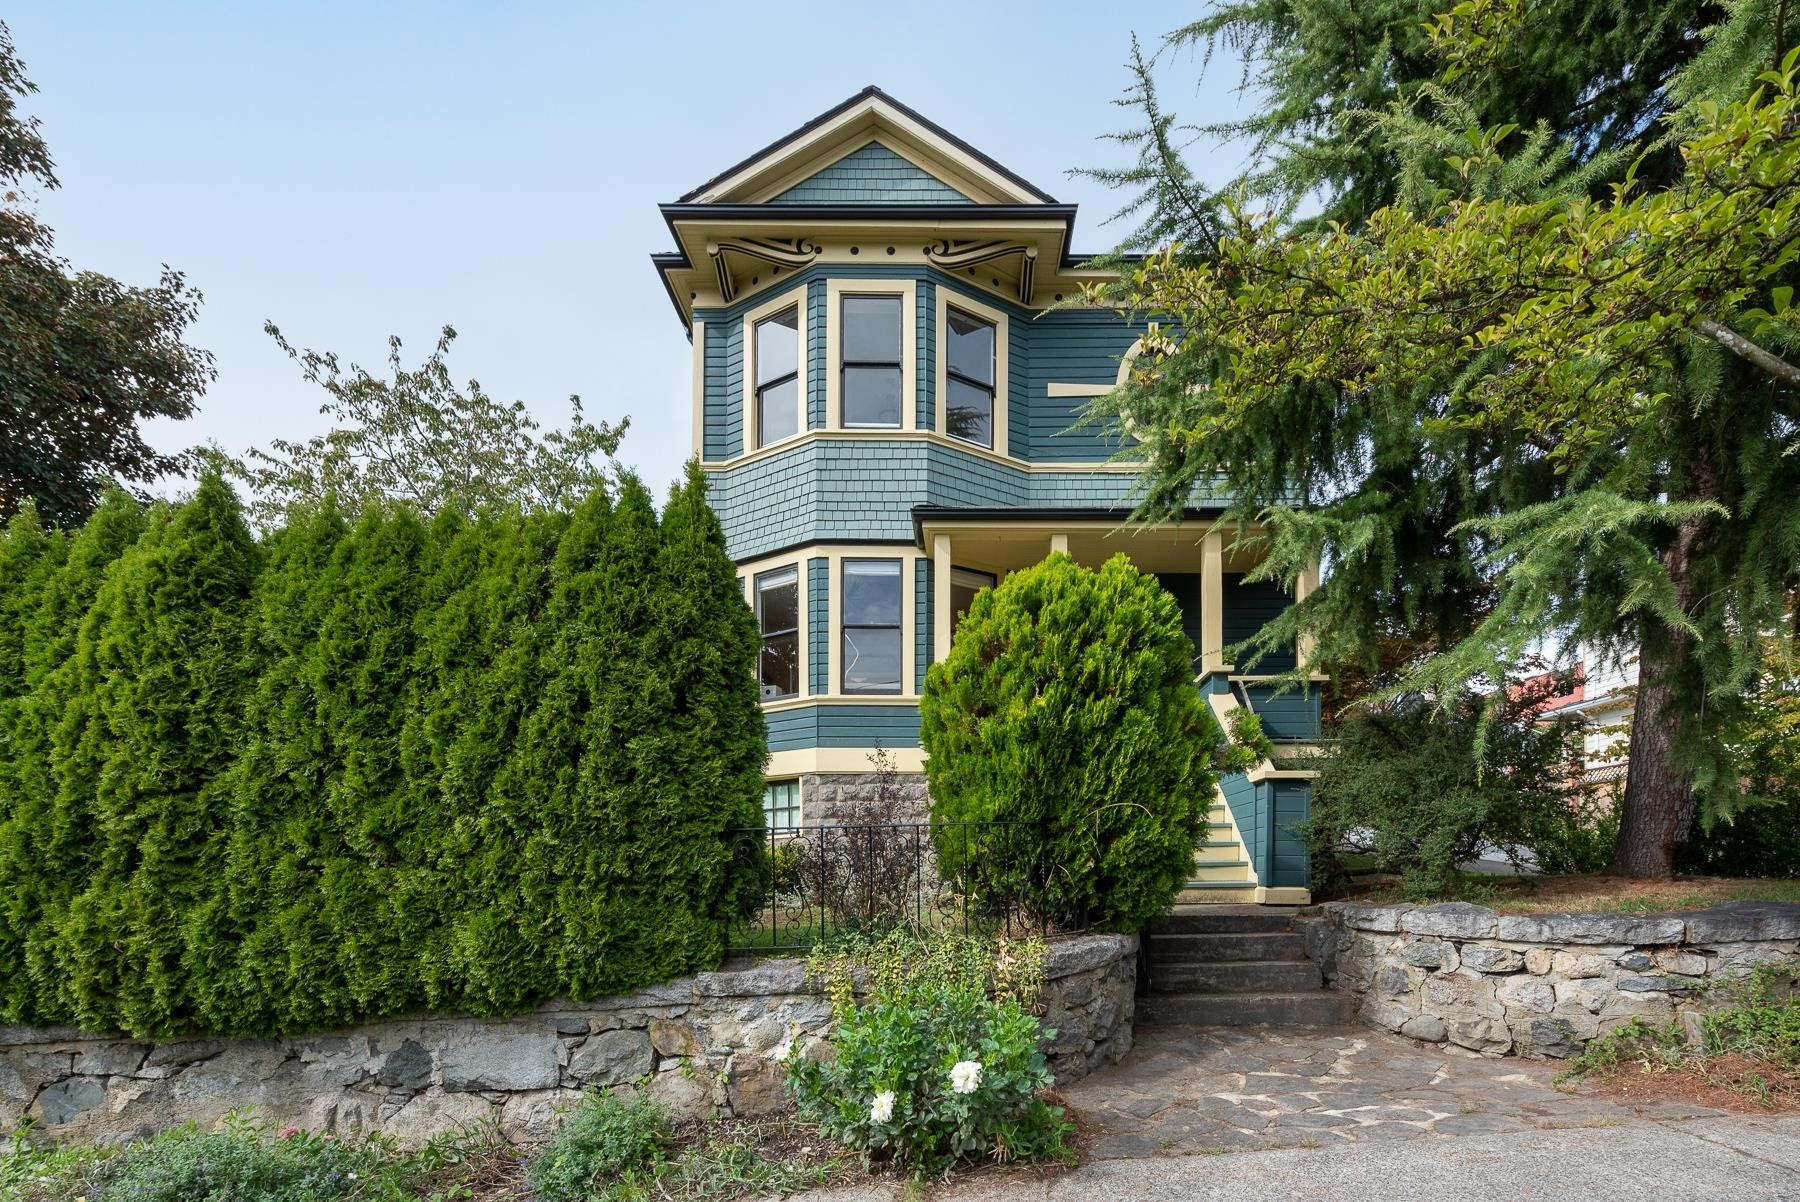 """Main Photo: 815 MILTON Street in New Westminster: Uptown NW House for sale in """"Brow of the Hill"""" : MLS®# R2620655"""